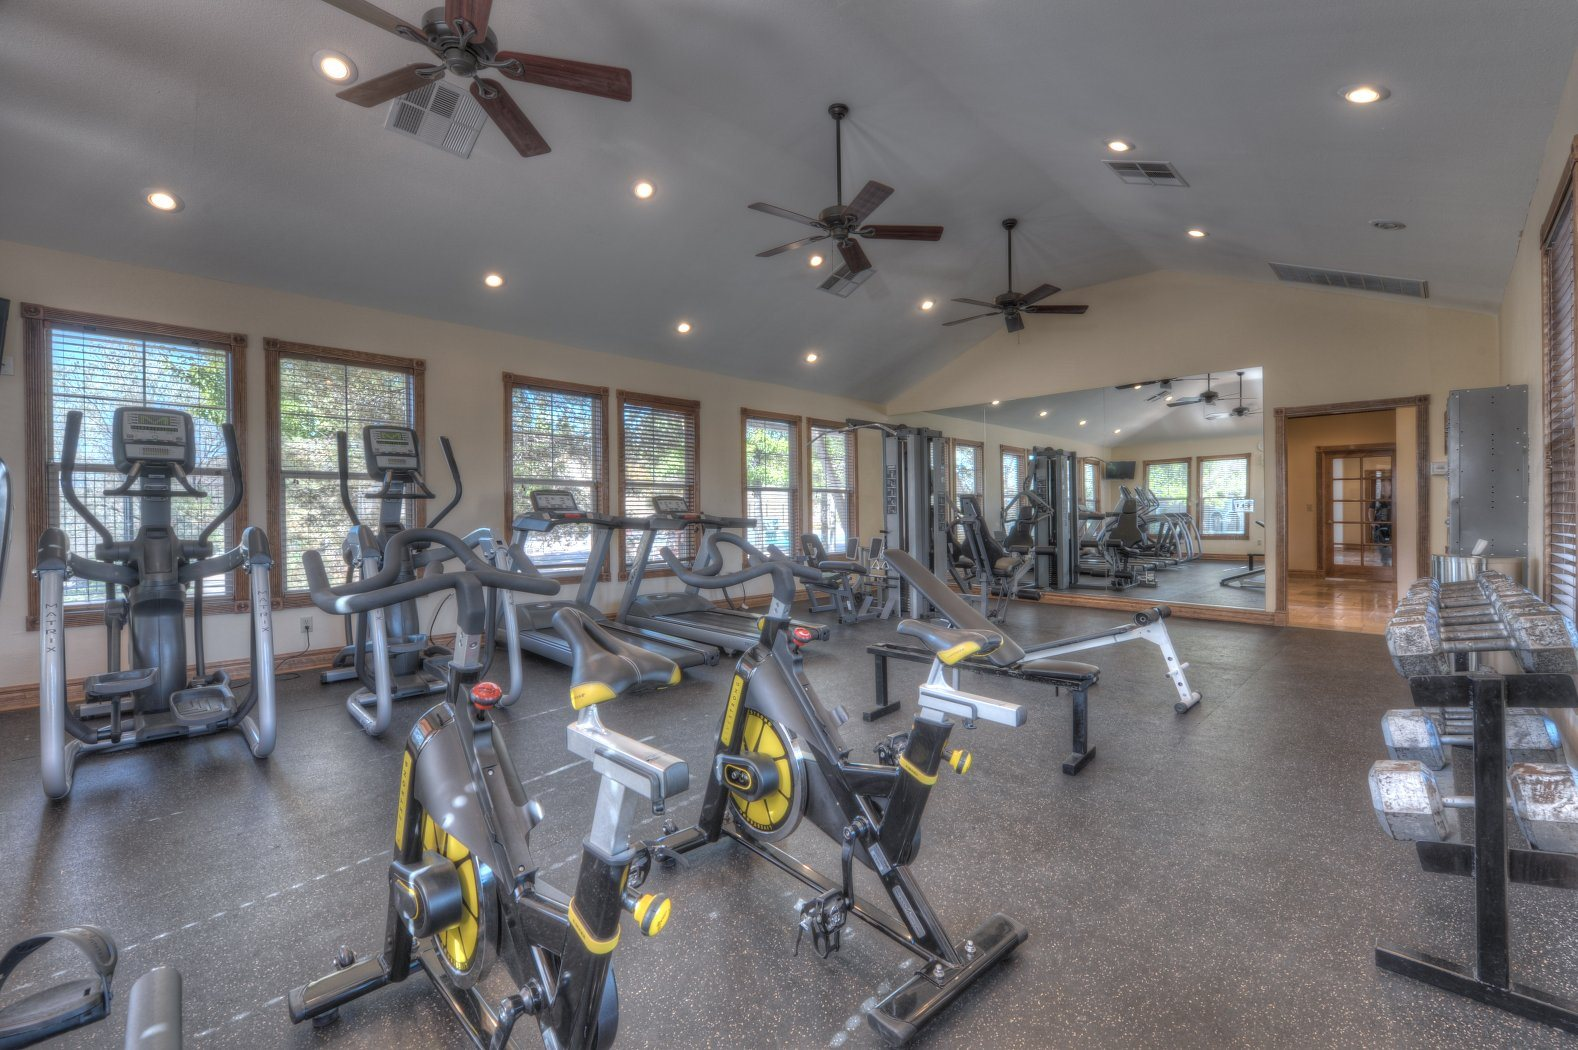 24- HR. FITNESS CENTER WITH TV/VCR at Manzanita Gate in Reno, NV 89523